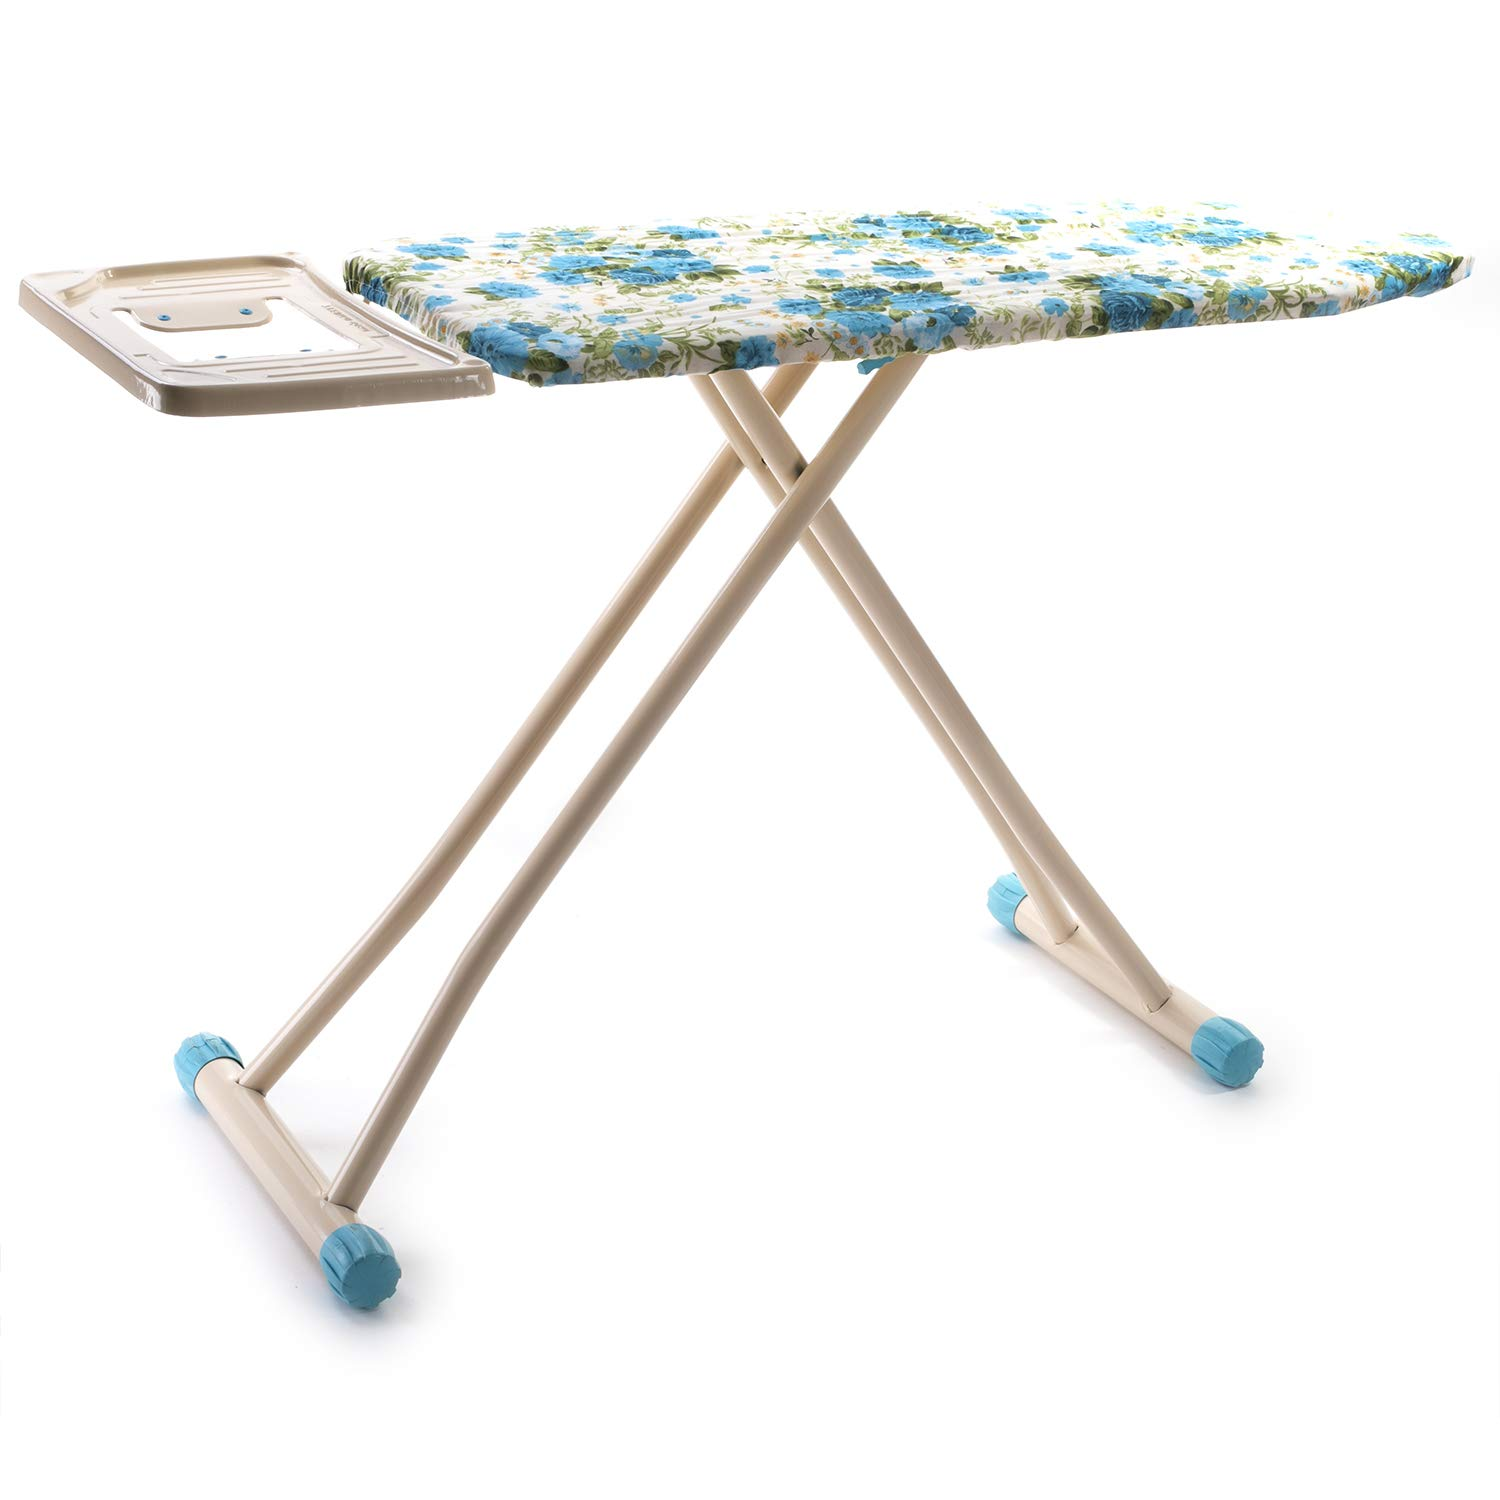 Pleasant Royalford 116 X 41 Cm Ironing Board With Steam Iron Rest Heat Resistant Contemporary Lightweight Iron Board With Adjustable Height And Lock System Ocoug Best Dining Table And Chair Ideas Images Ocougorg